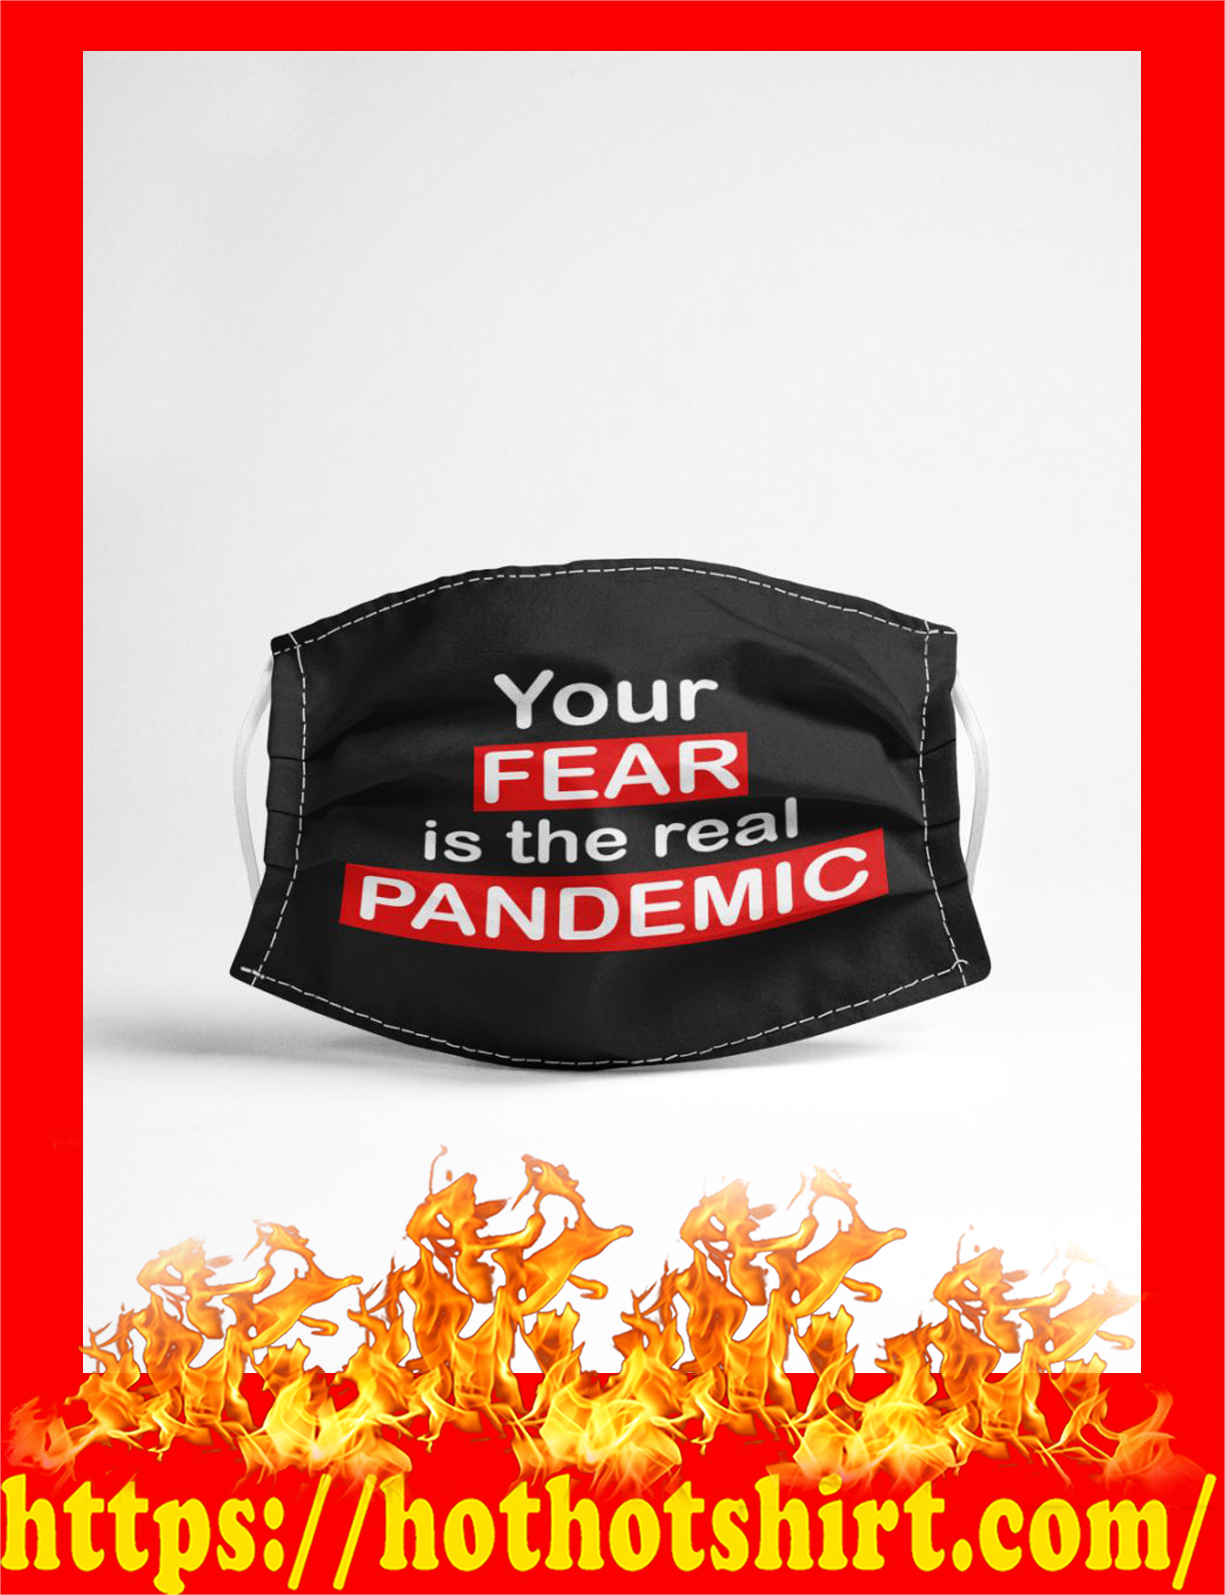 Your fear is the real pandemic face mask - detail